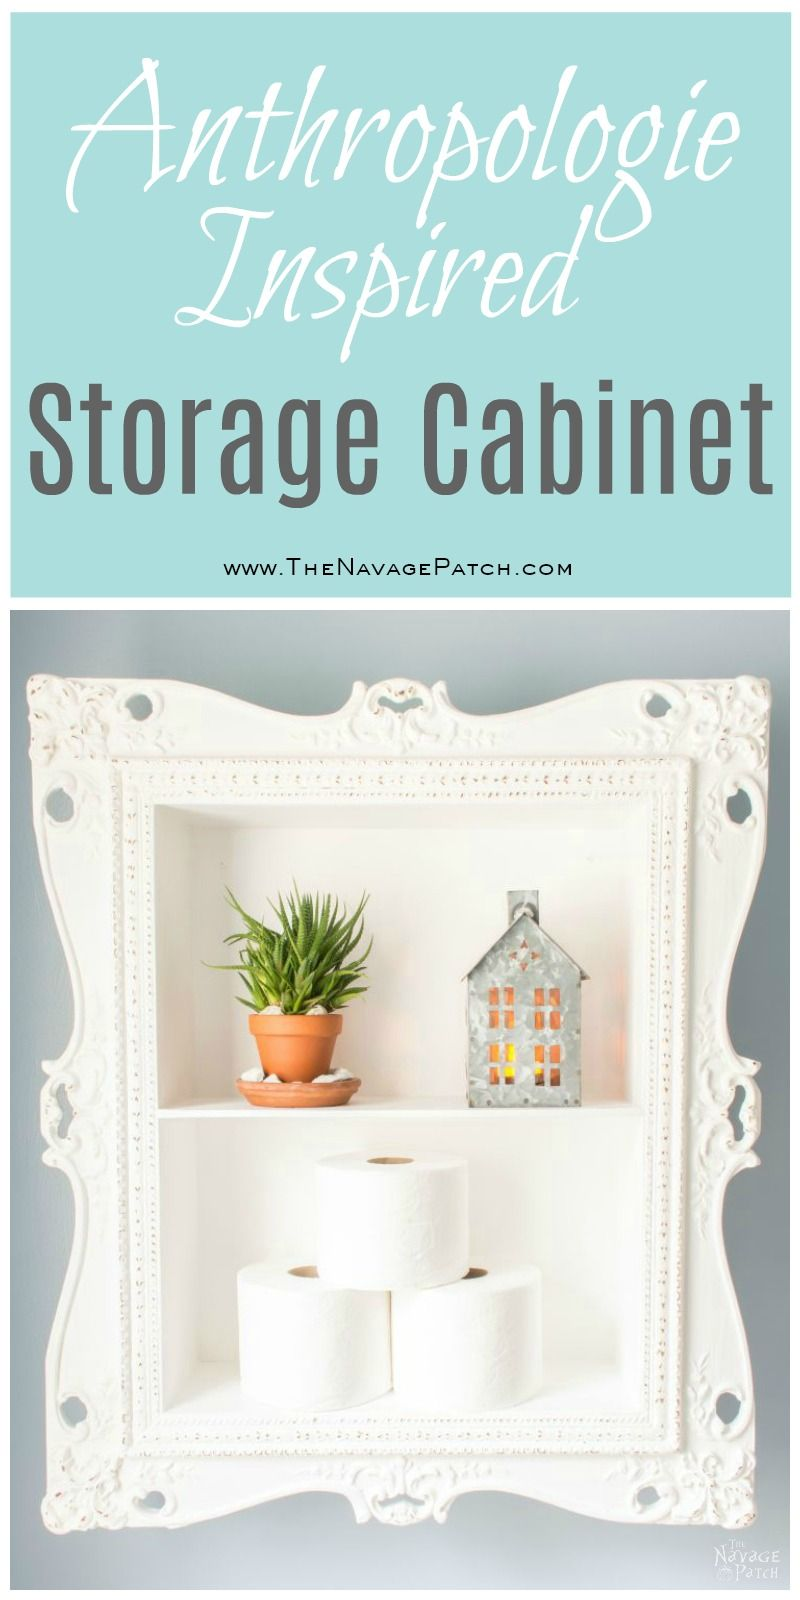 Anthropologie inspired storage cabinet | DIY storage cabinet | Upcycled picture frame | DIY chalk paint recipe | Anthropologie knockoff storage cabinet | How to turn picture frame to storage cabinet | DIY furniture and easy organization | DIY cabinetry and woodworking | Homemade chalk paint | Before & After | TheNavagePatch.com